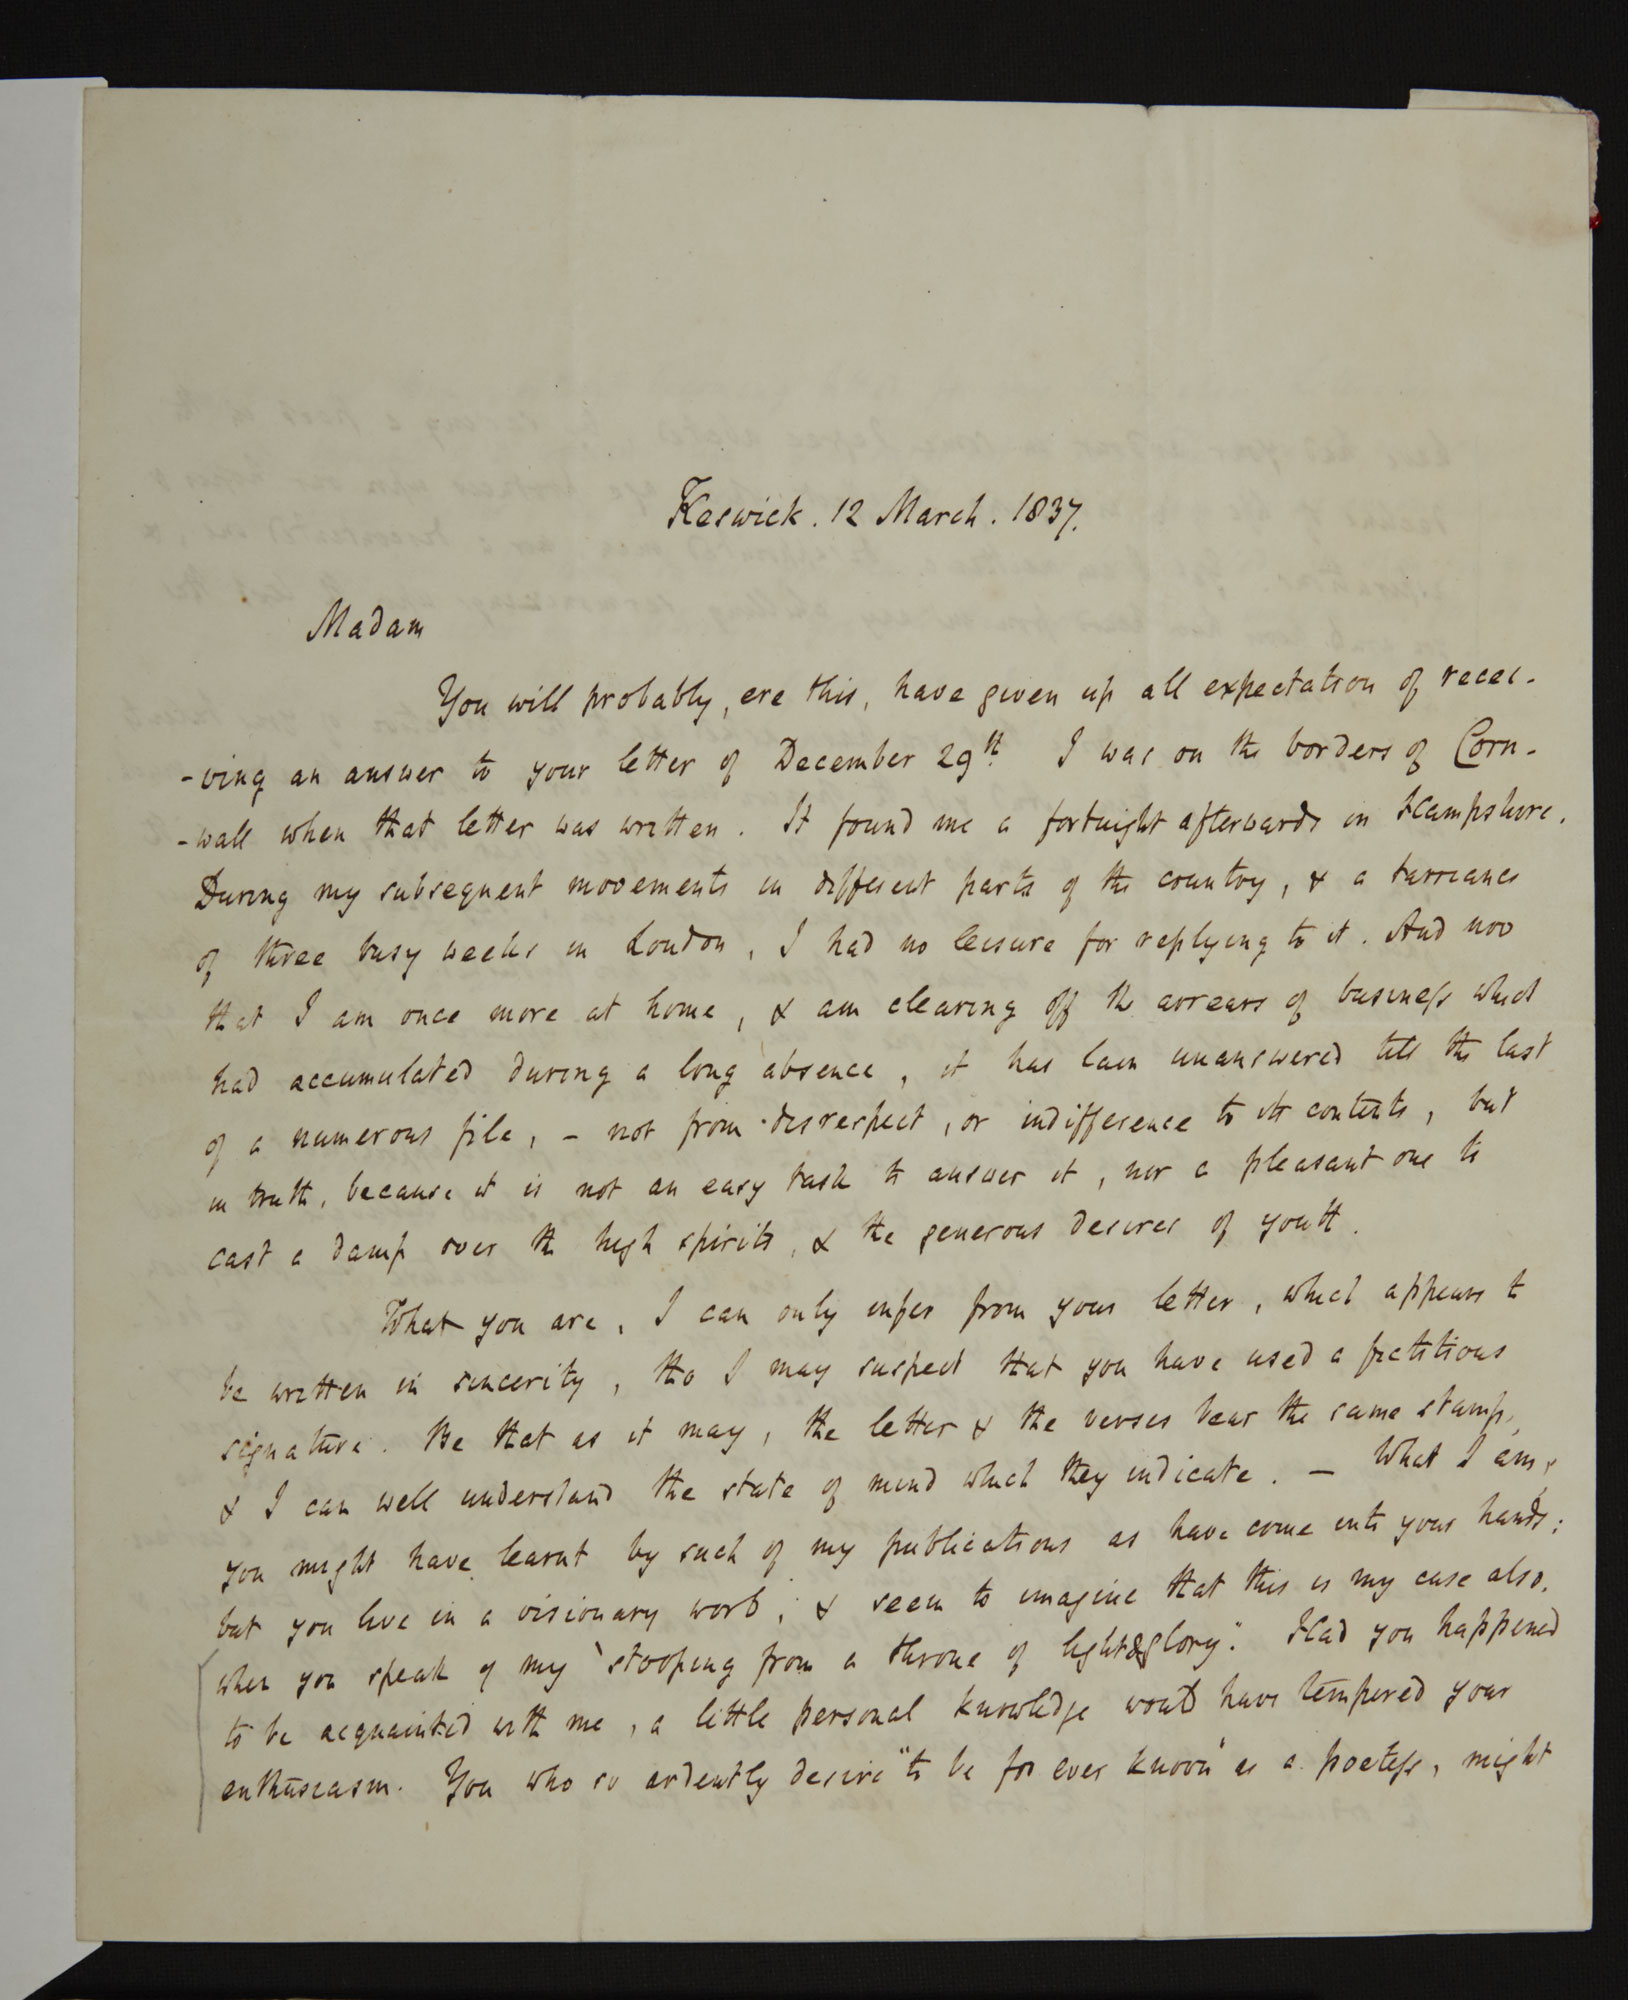 Letter from Robert Southey to Charlotte Bronte, 12 March 1837 - The